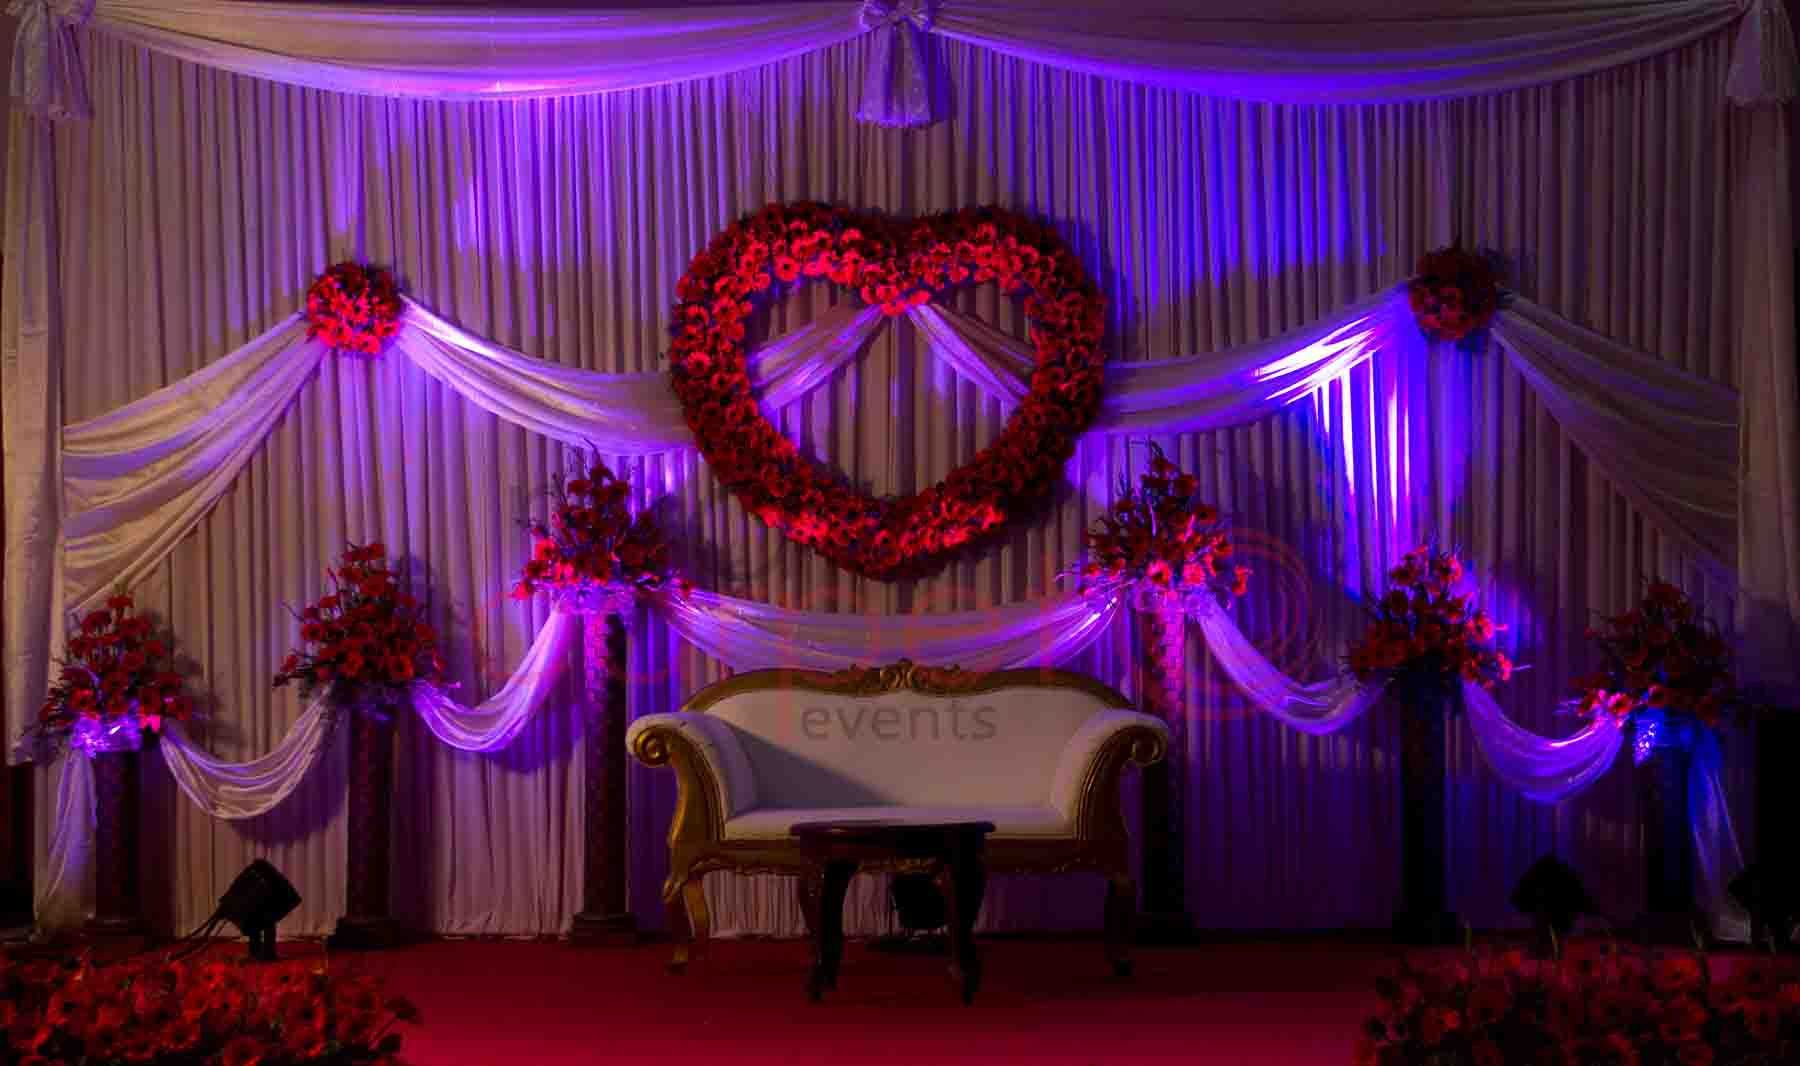 Indian wedding reception decorations valentine theme for Small wedding reception decorations